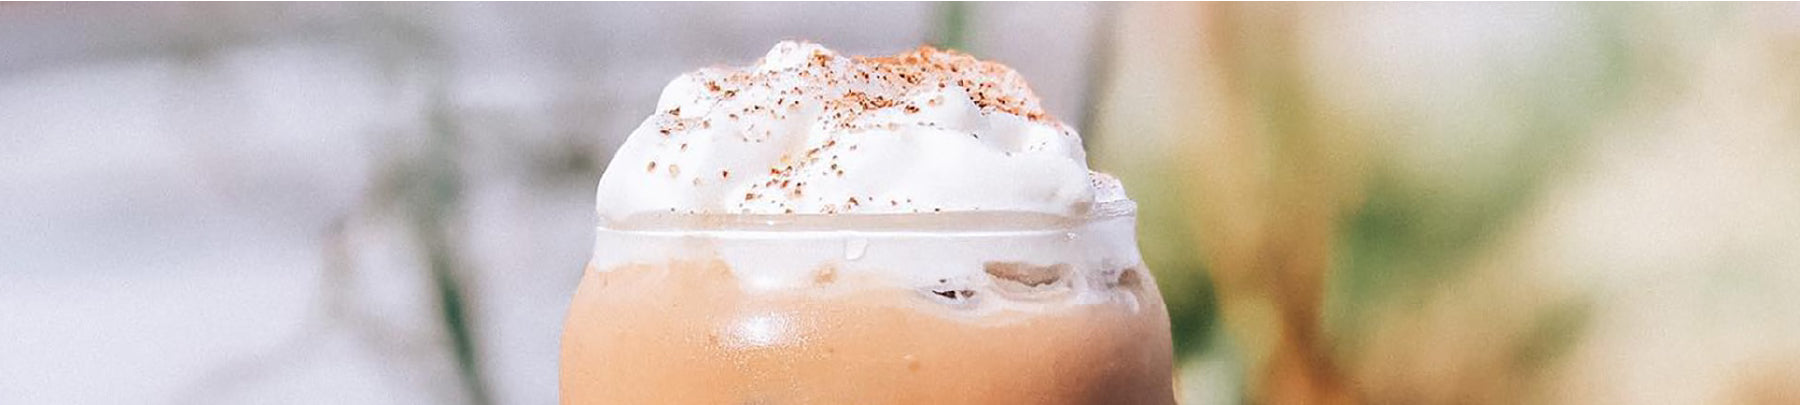 Iced Coffee with a Decadent Whipped Cream Froth - from Coffee Life, a blog by EspressoWorks